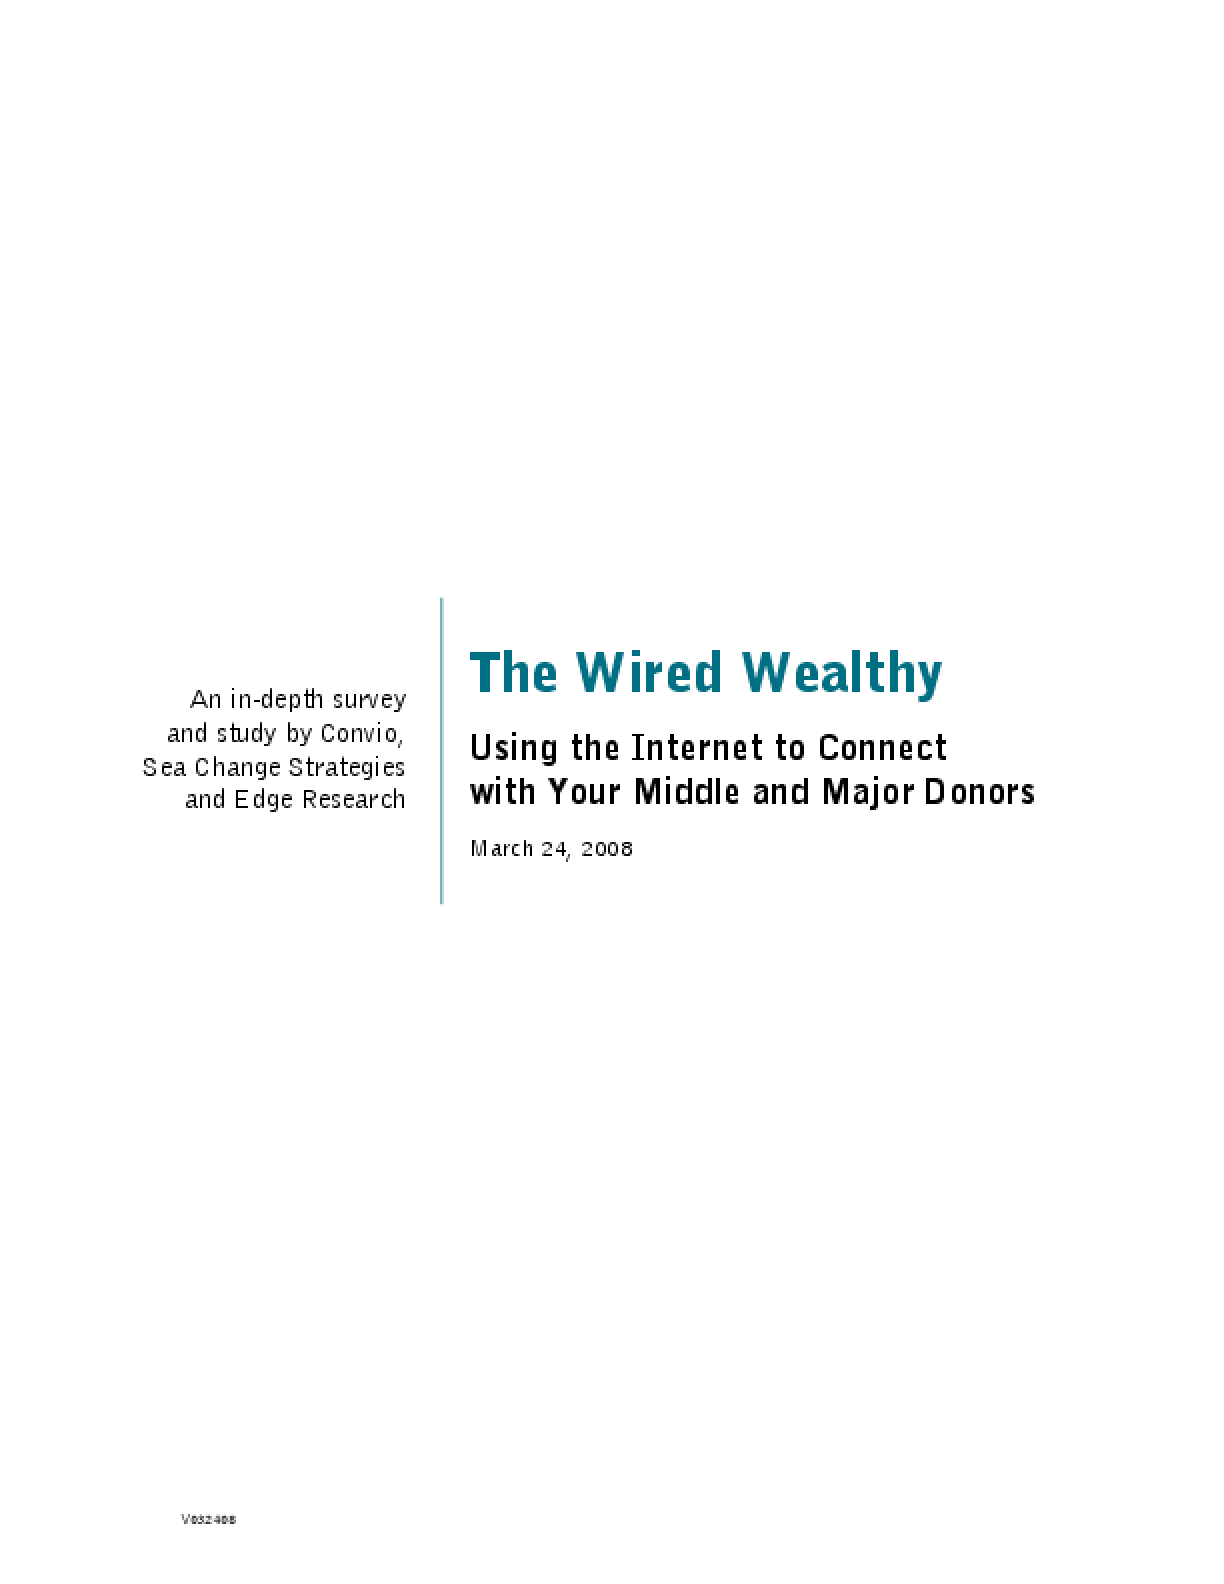 The Wired Wealthy: Using the Internet to Connect With Your Middle and Major Donors